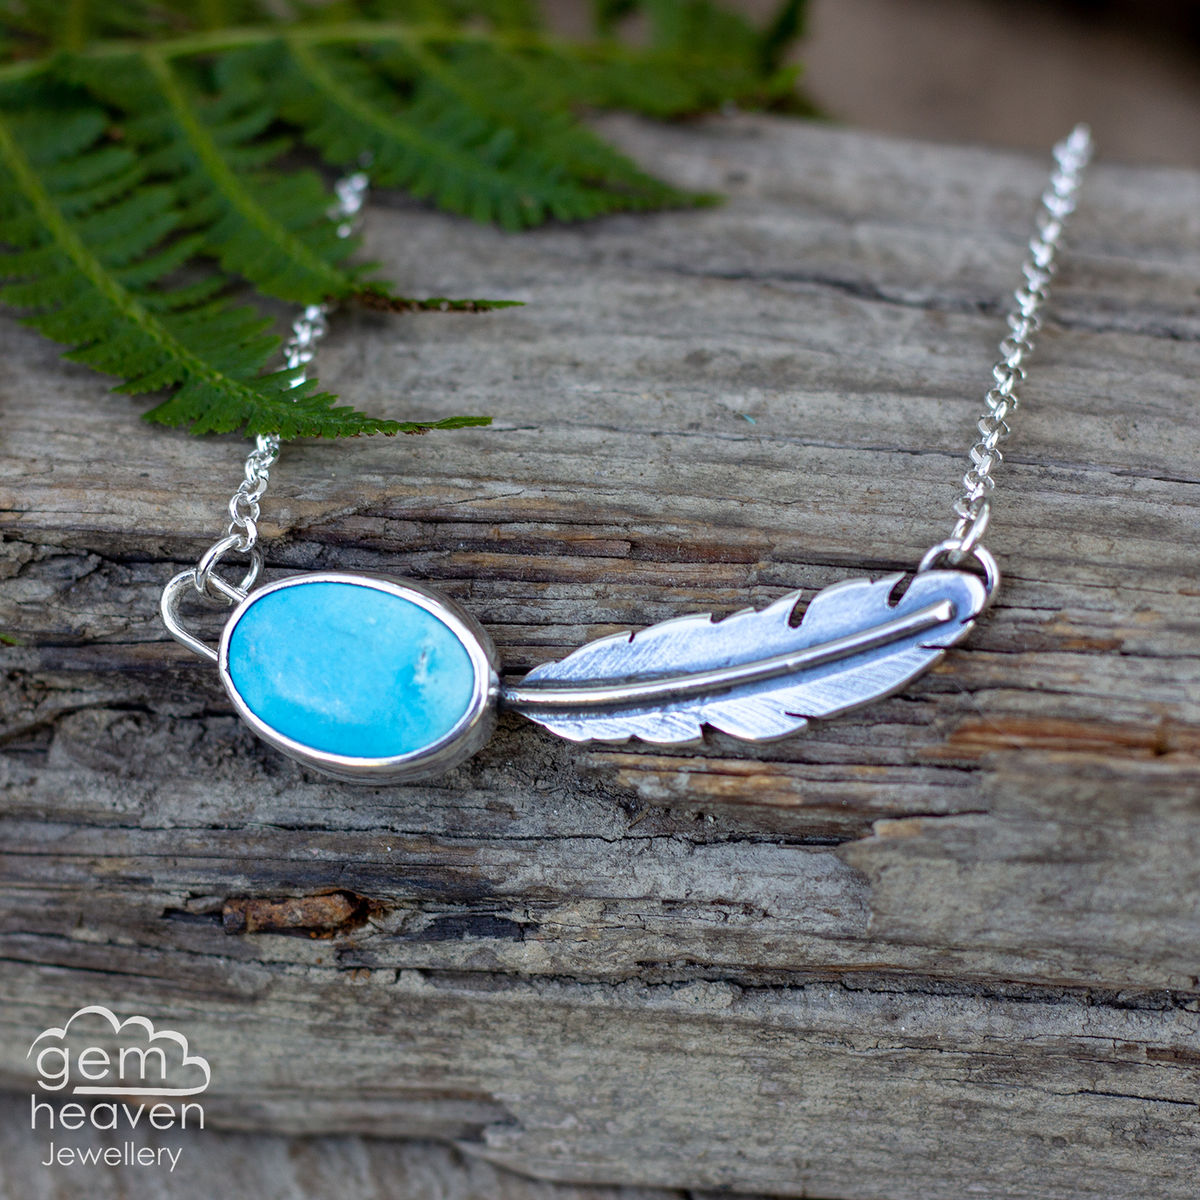 Morrigan Series Necklace with Turquoise - product images  of